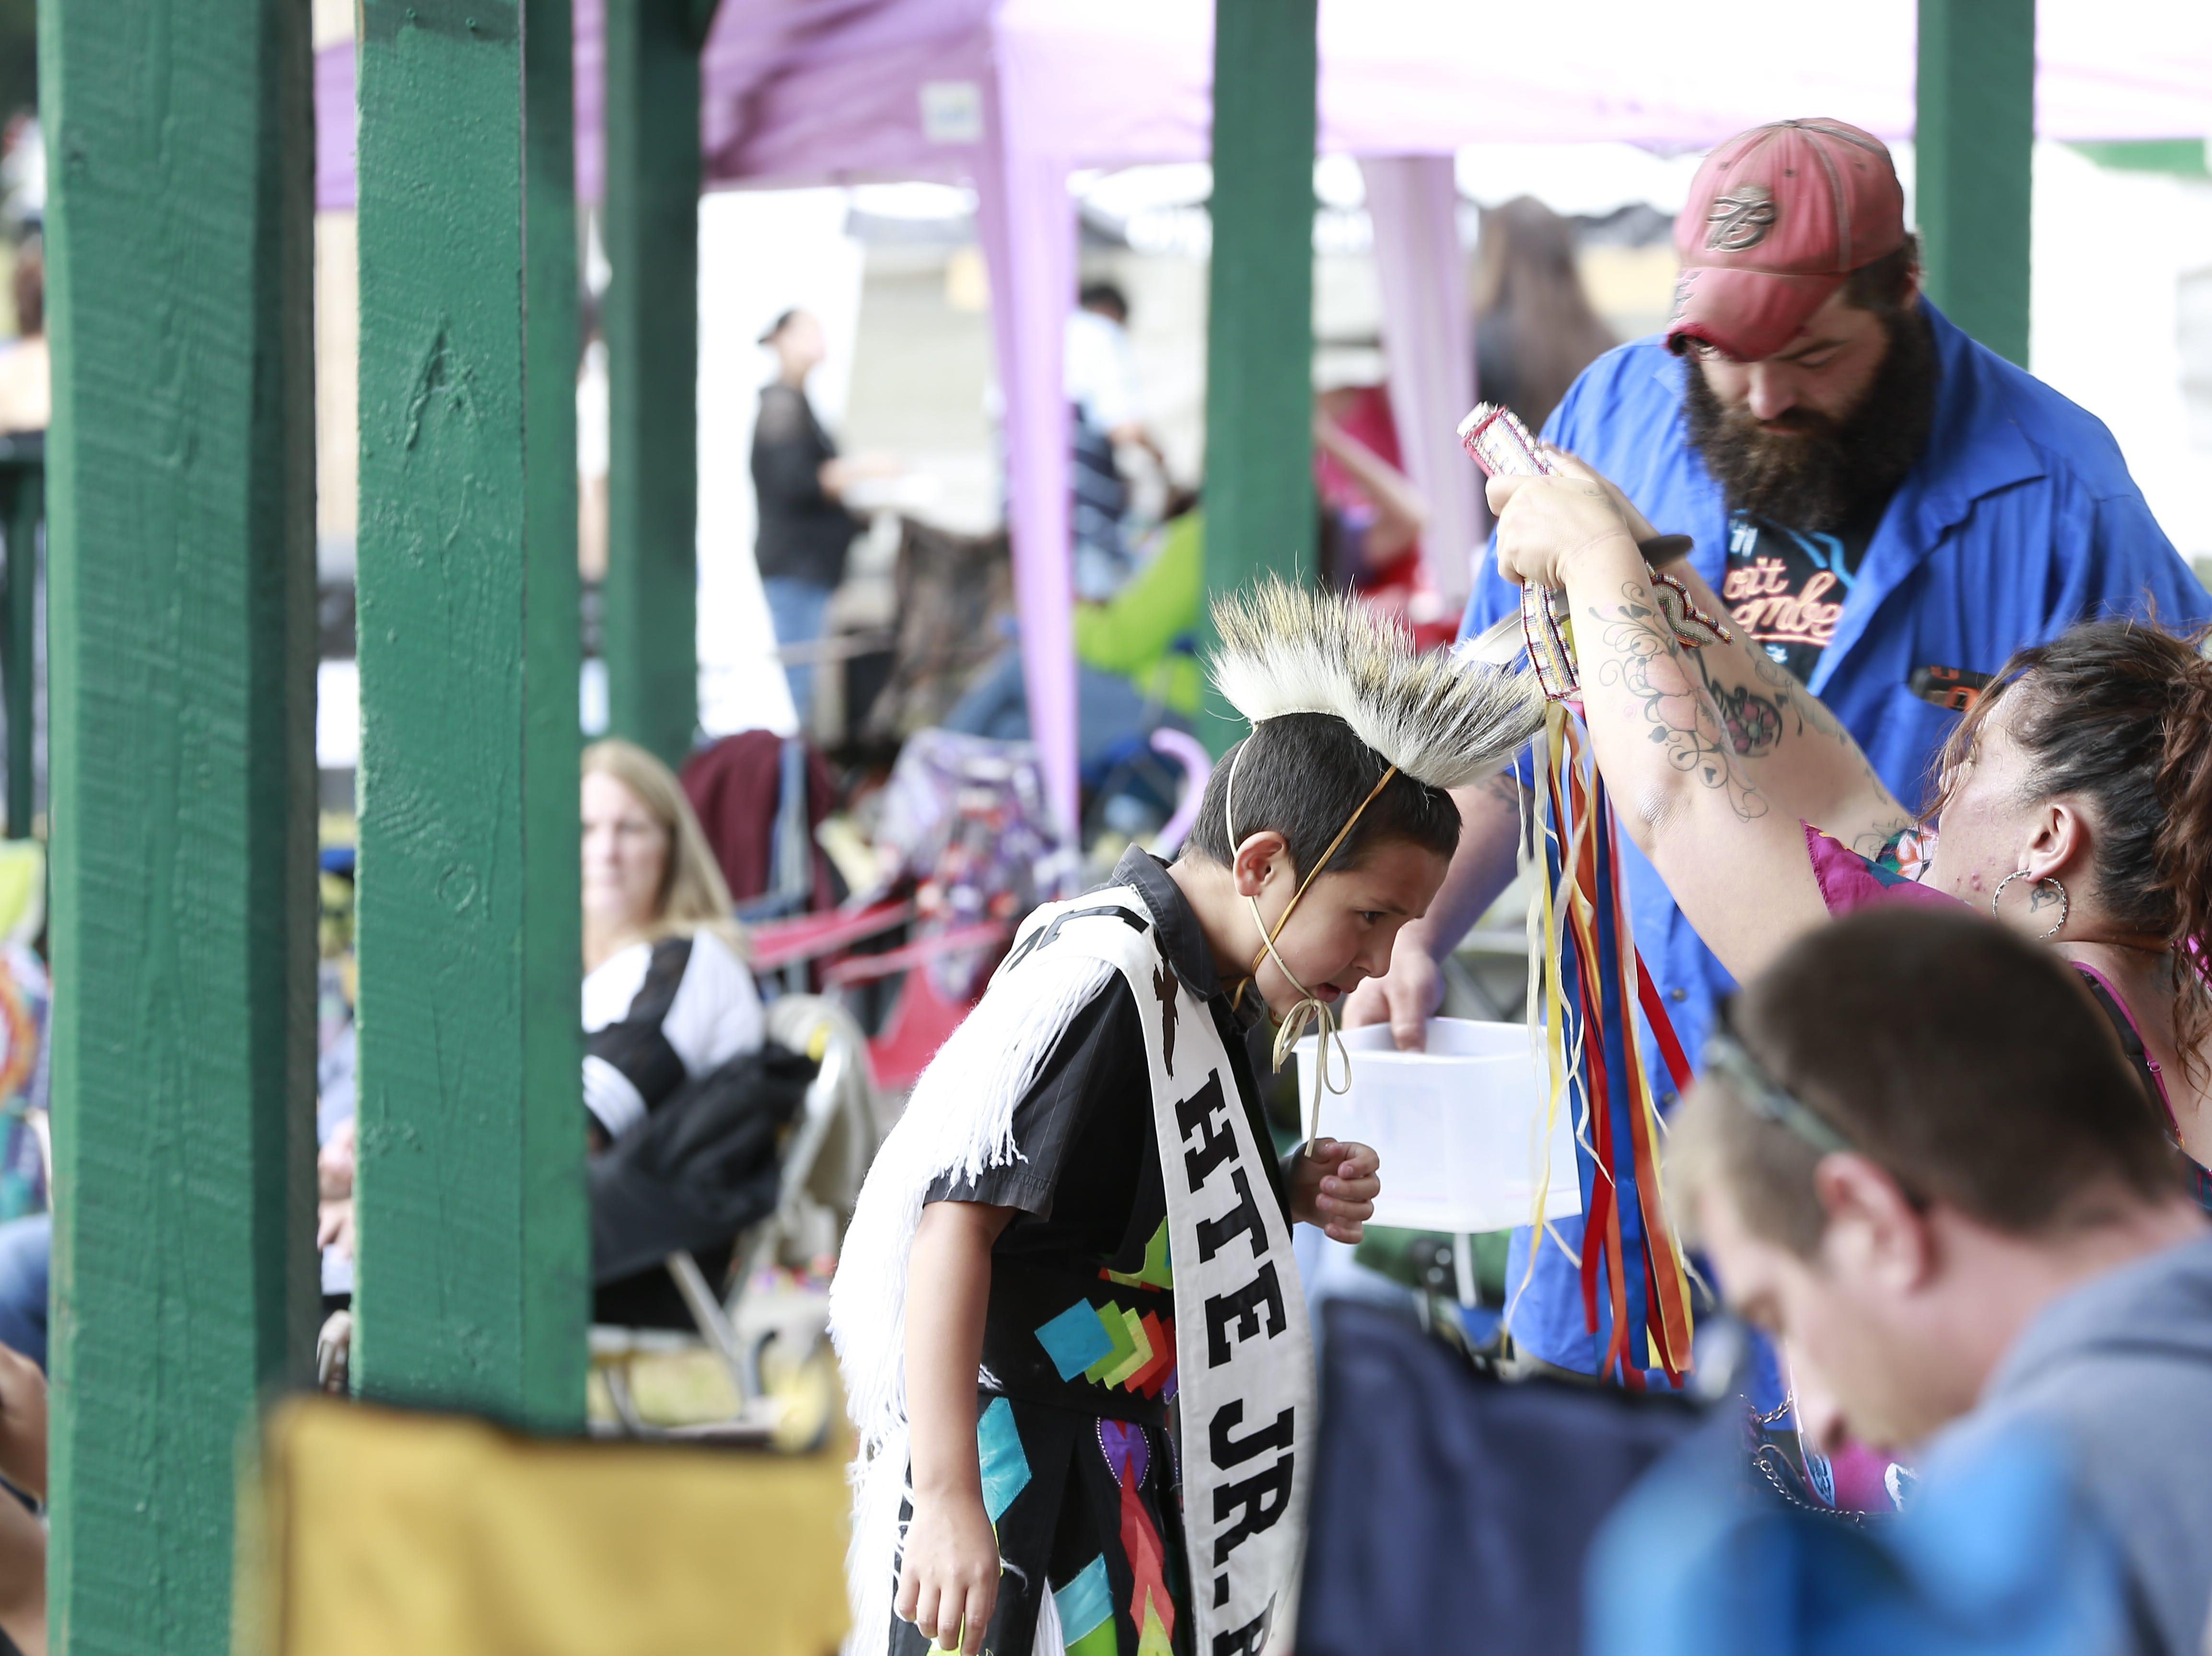 A boy leans over to get his neck wearing put on Friday, July 20, 2018, to celebrate the Honor the Earth Pow-wow event at LCO School in Hayward, Wis.